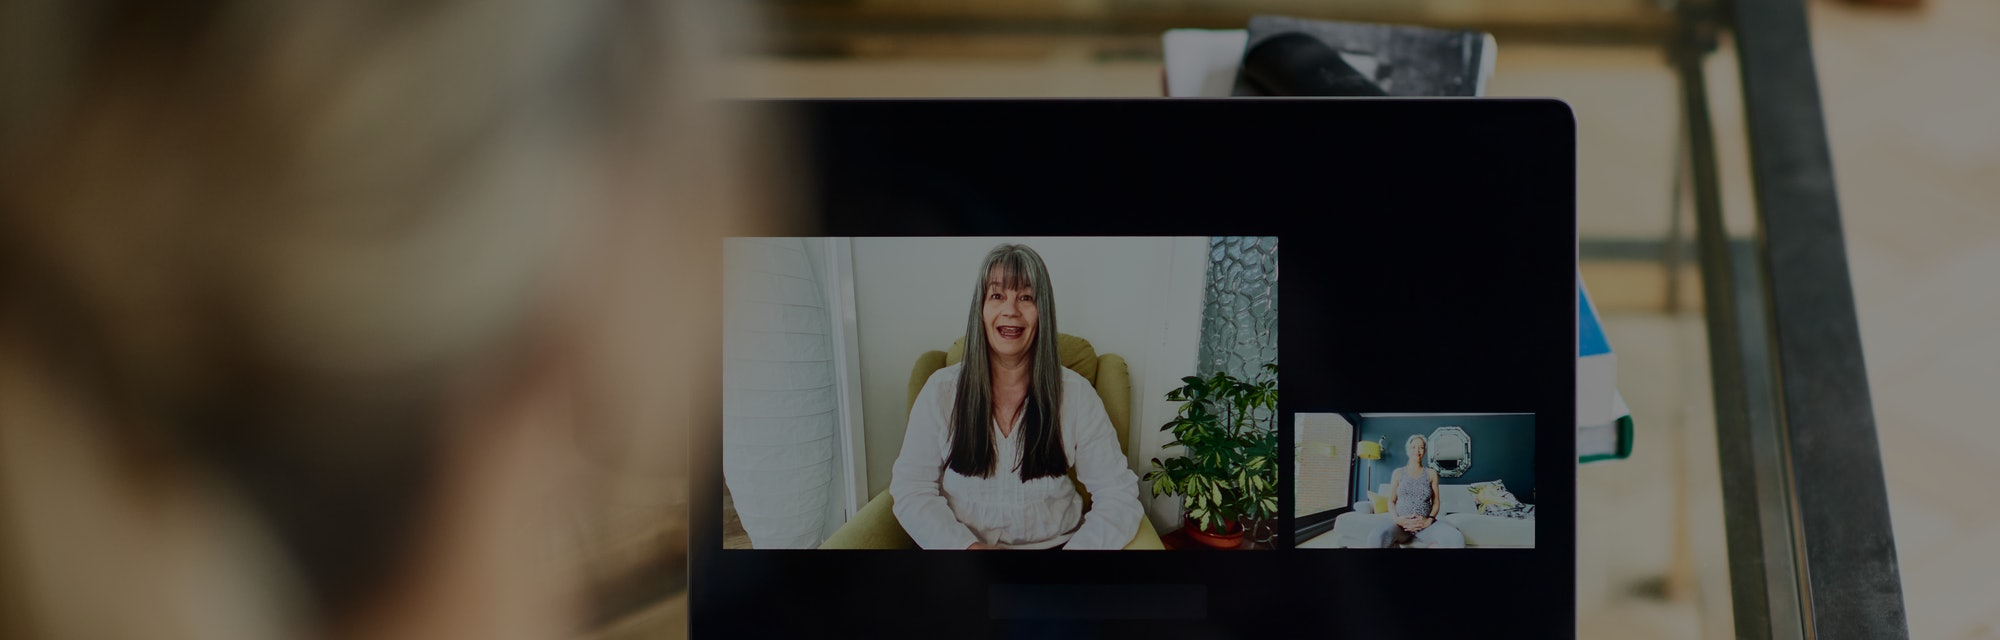 Mature women communicating on internet during therapy session, friends talking on video call, woman receiving guidance and support, e-health consultation